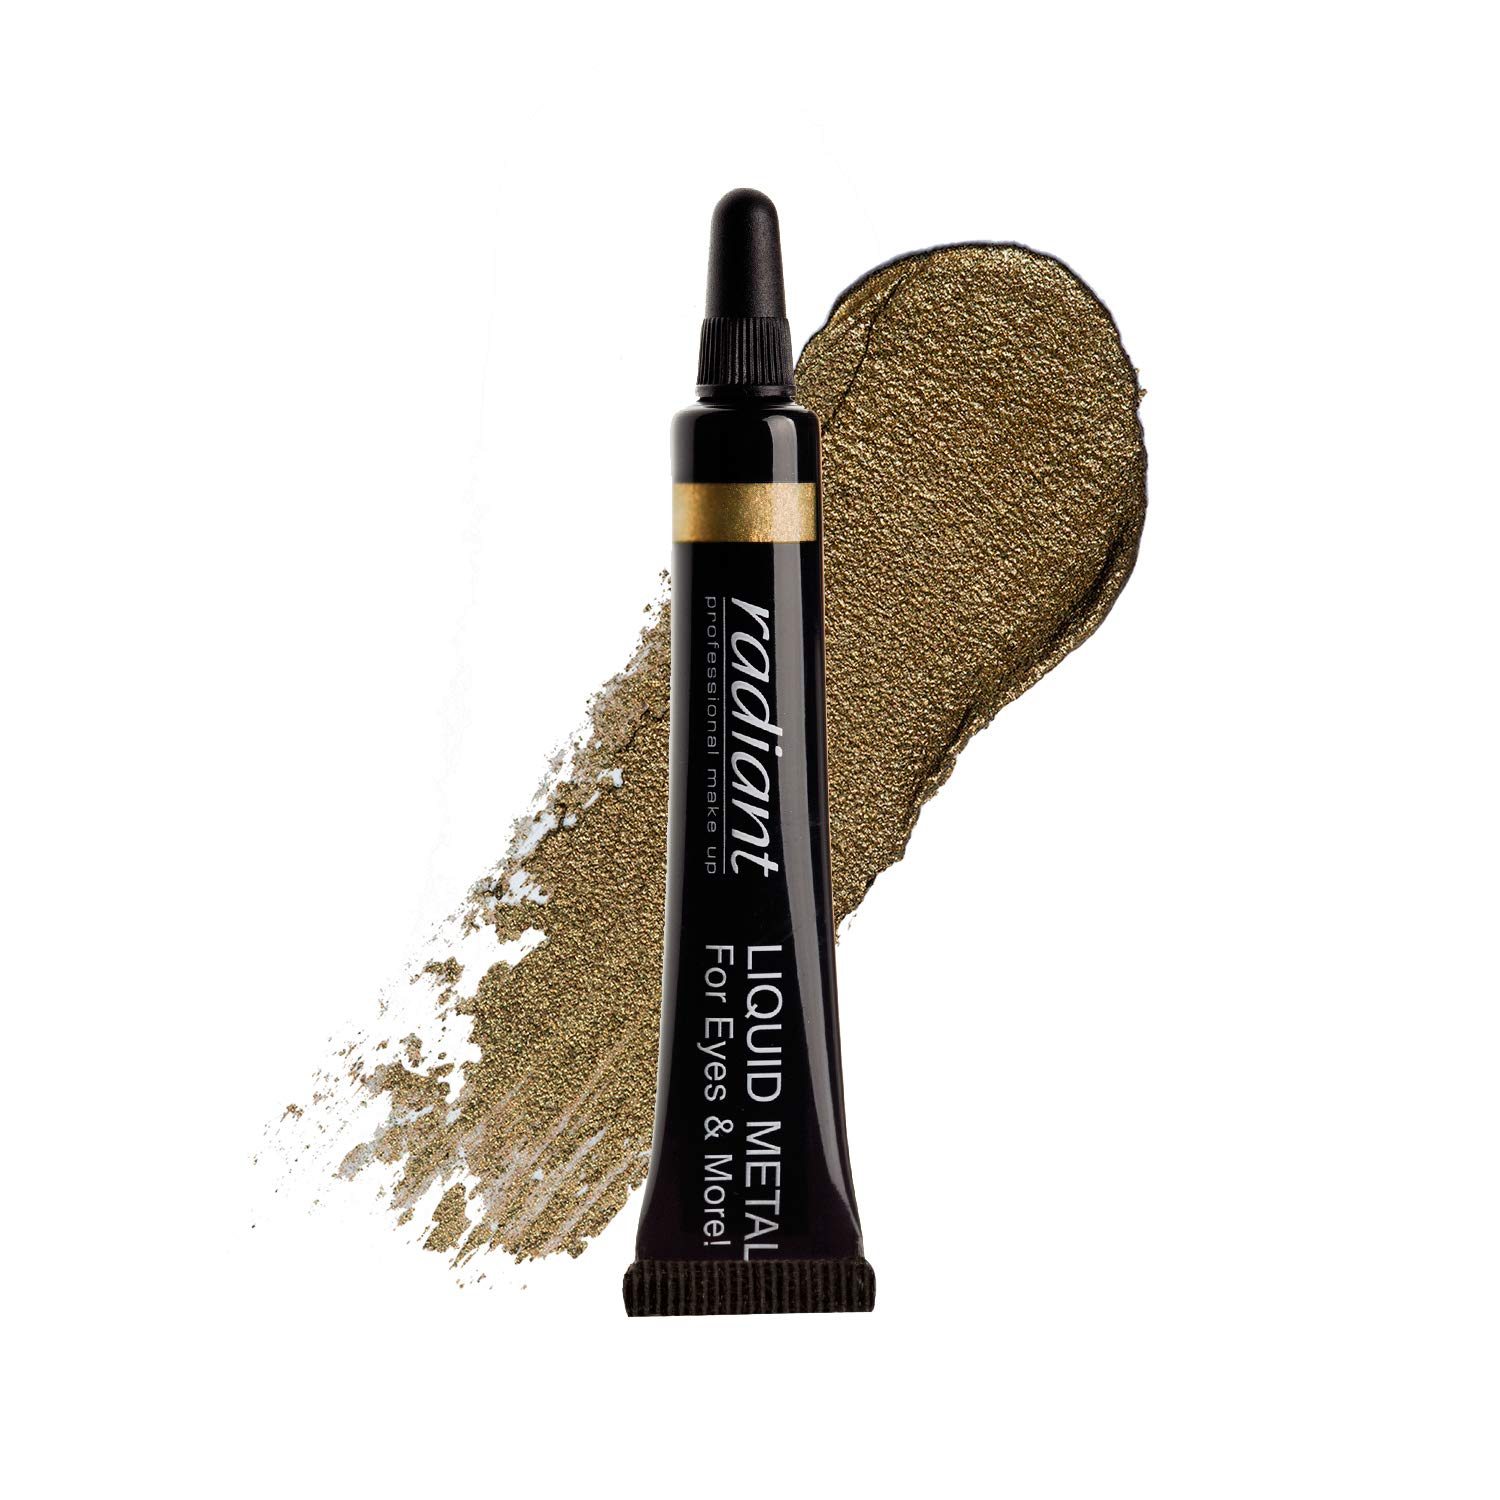 Radiant Professional Liquid Metal Eyeshadow For Eyes & Lips, Waterproof Liquid Shadow for Intense Color & Long Lasting Effect, Fast Drying Smudge Proof Metallic Pigment, 0.23 ounces (21)